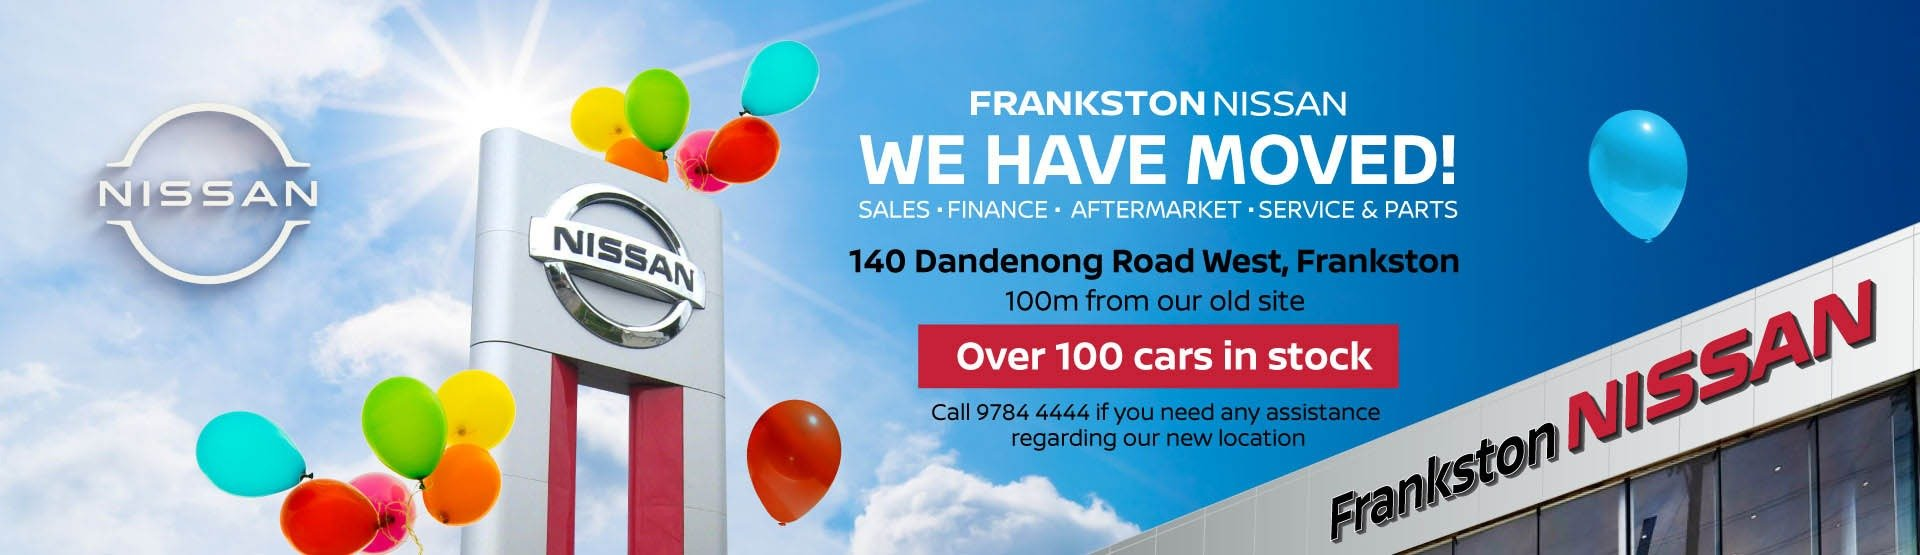 Frankston Nissan - We have moved banner